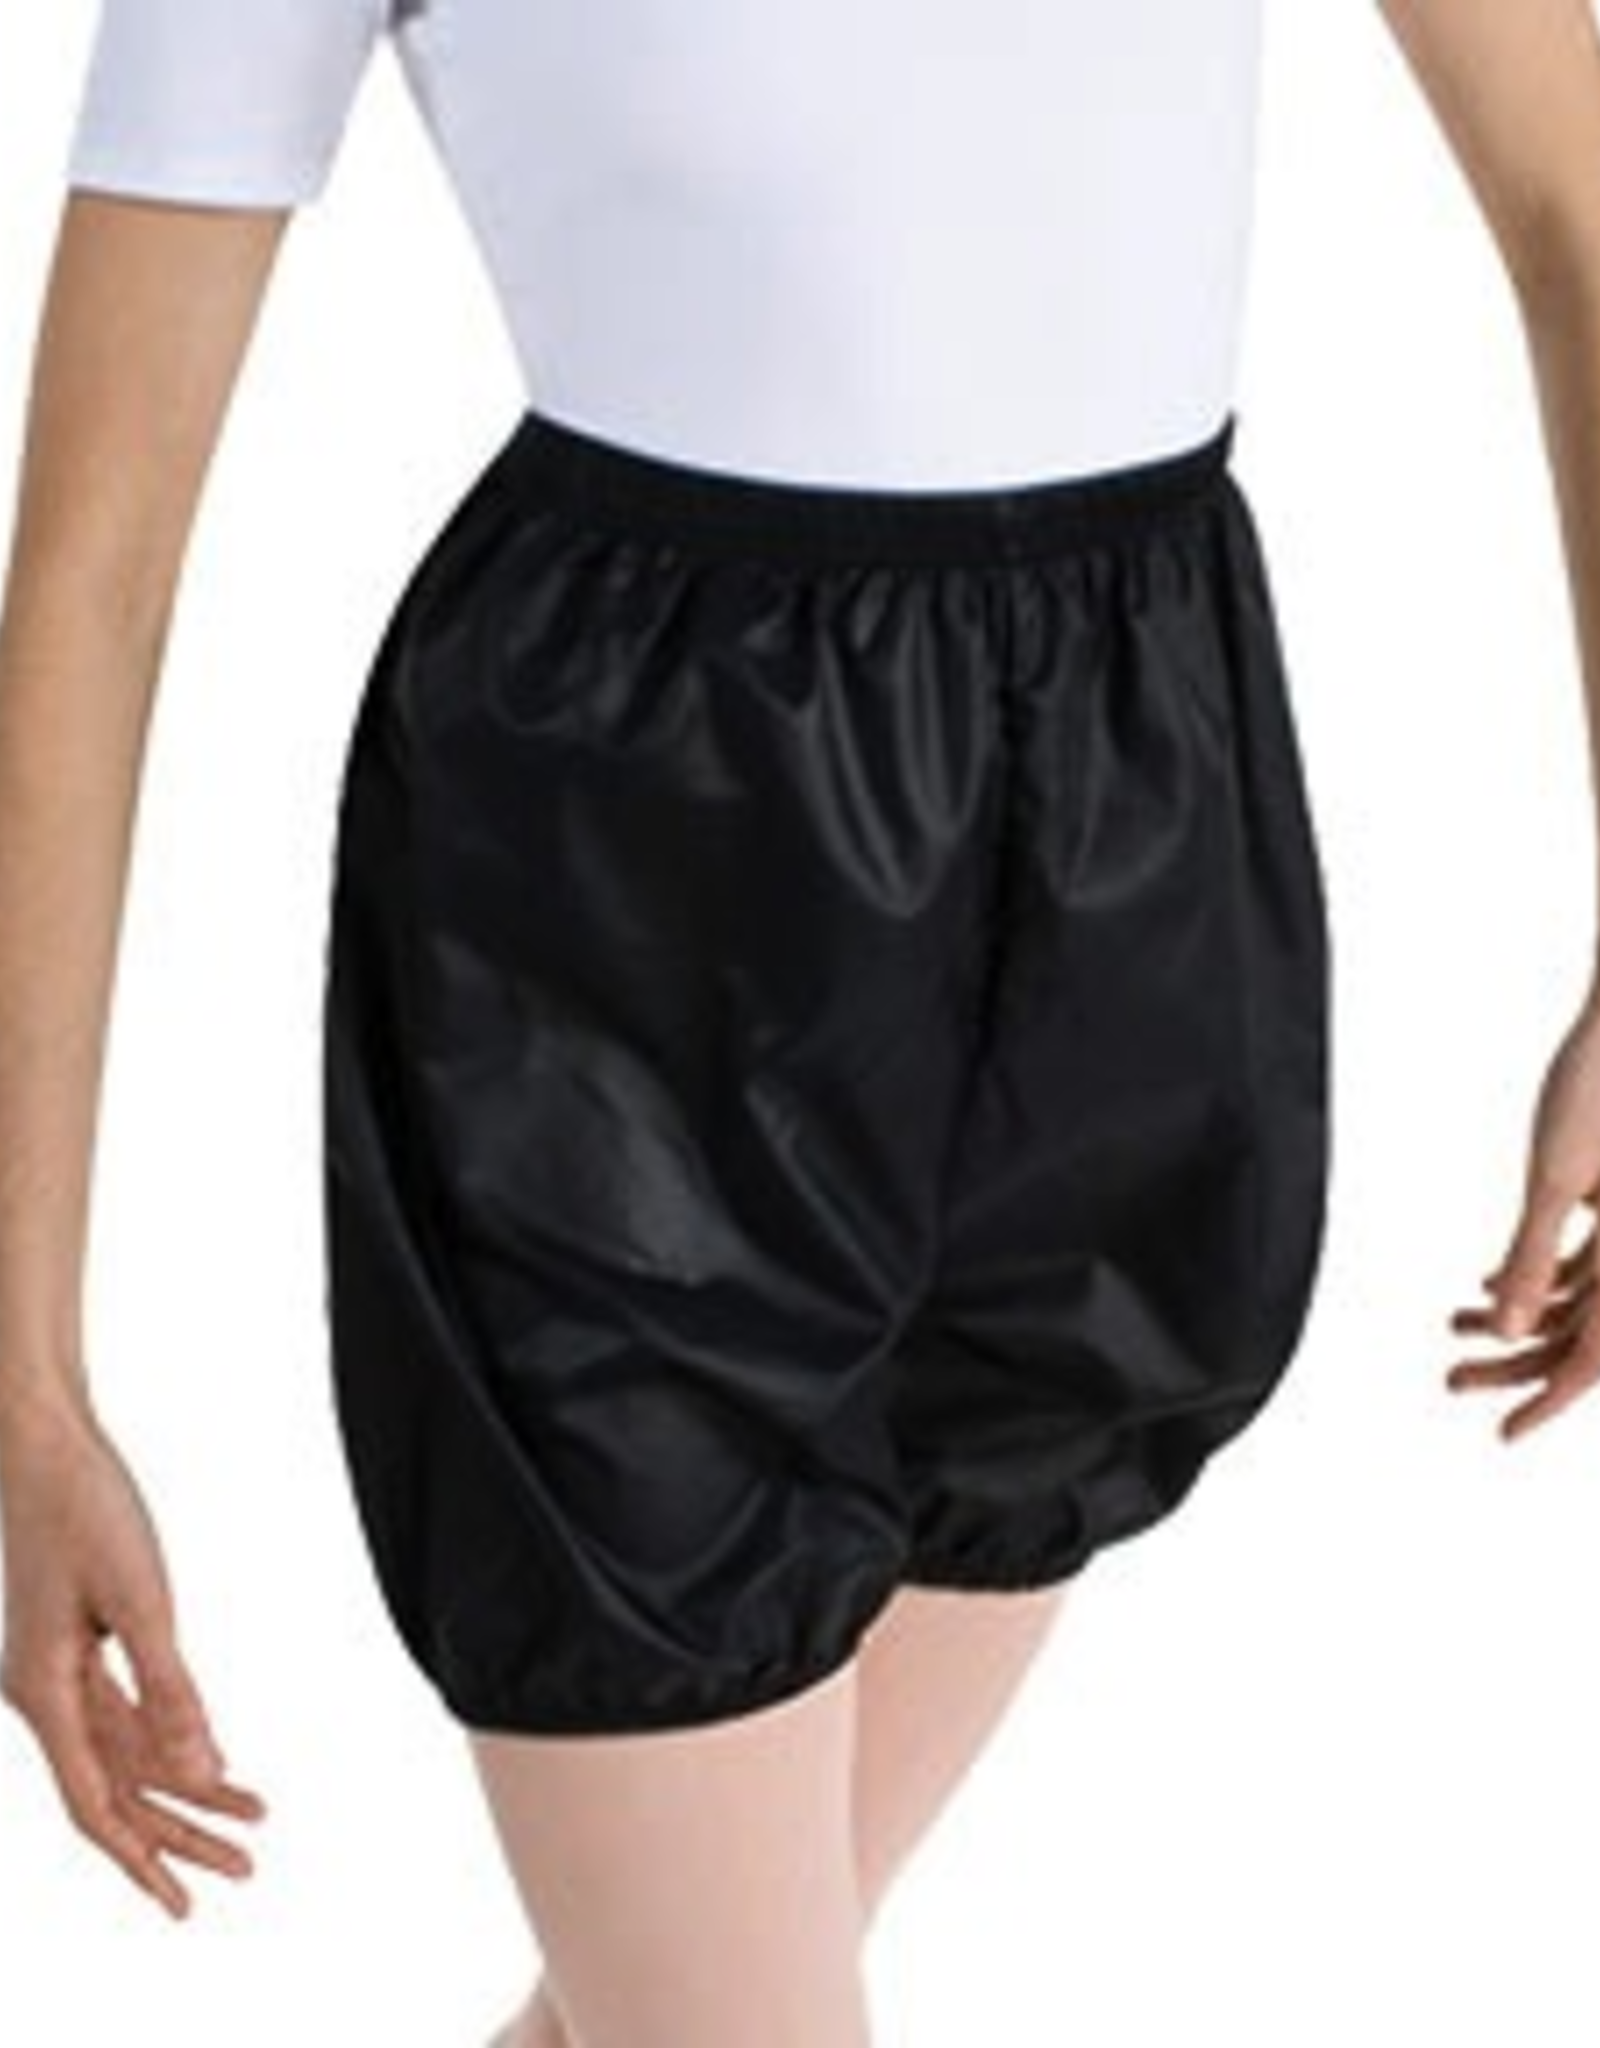 Bodywrappers 746 Ripstop Bloomers Adult